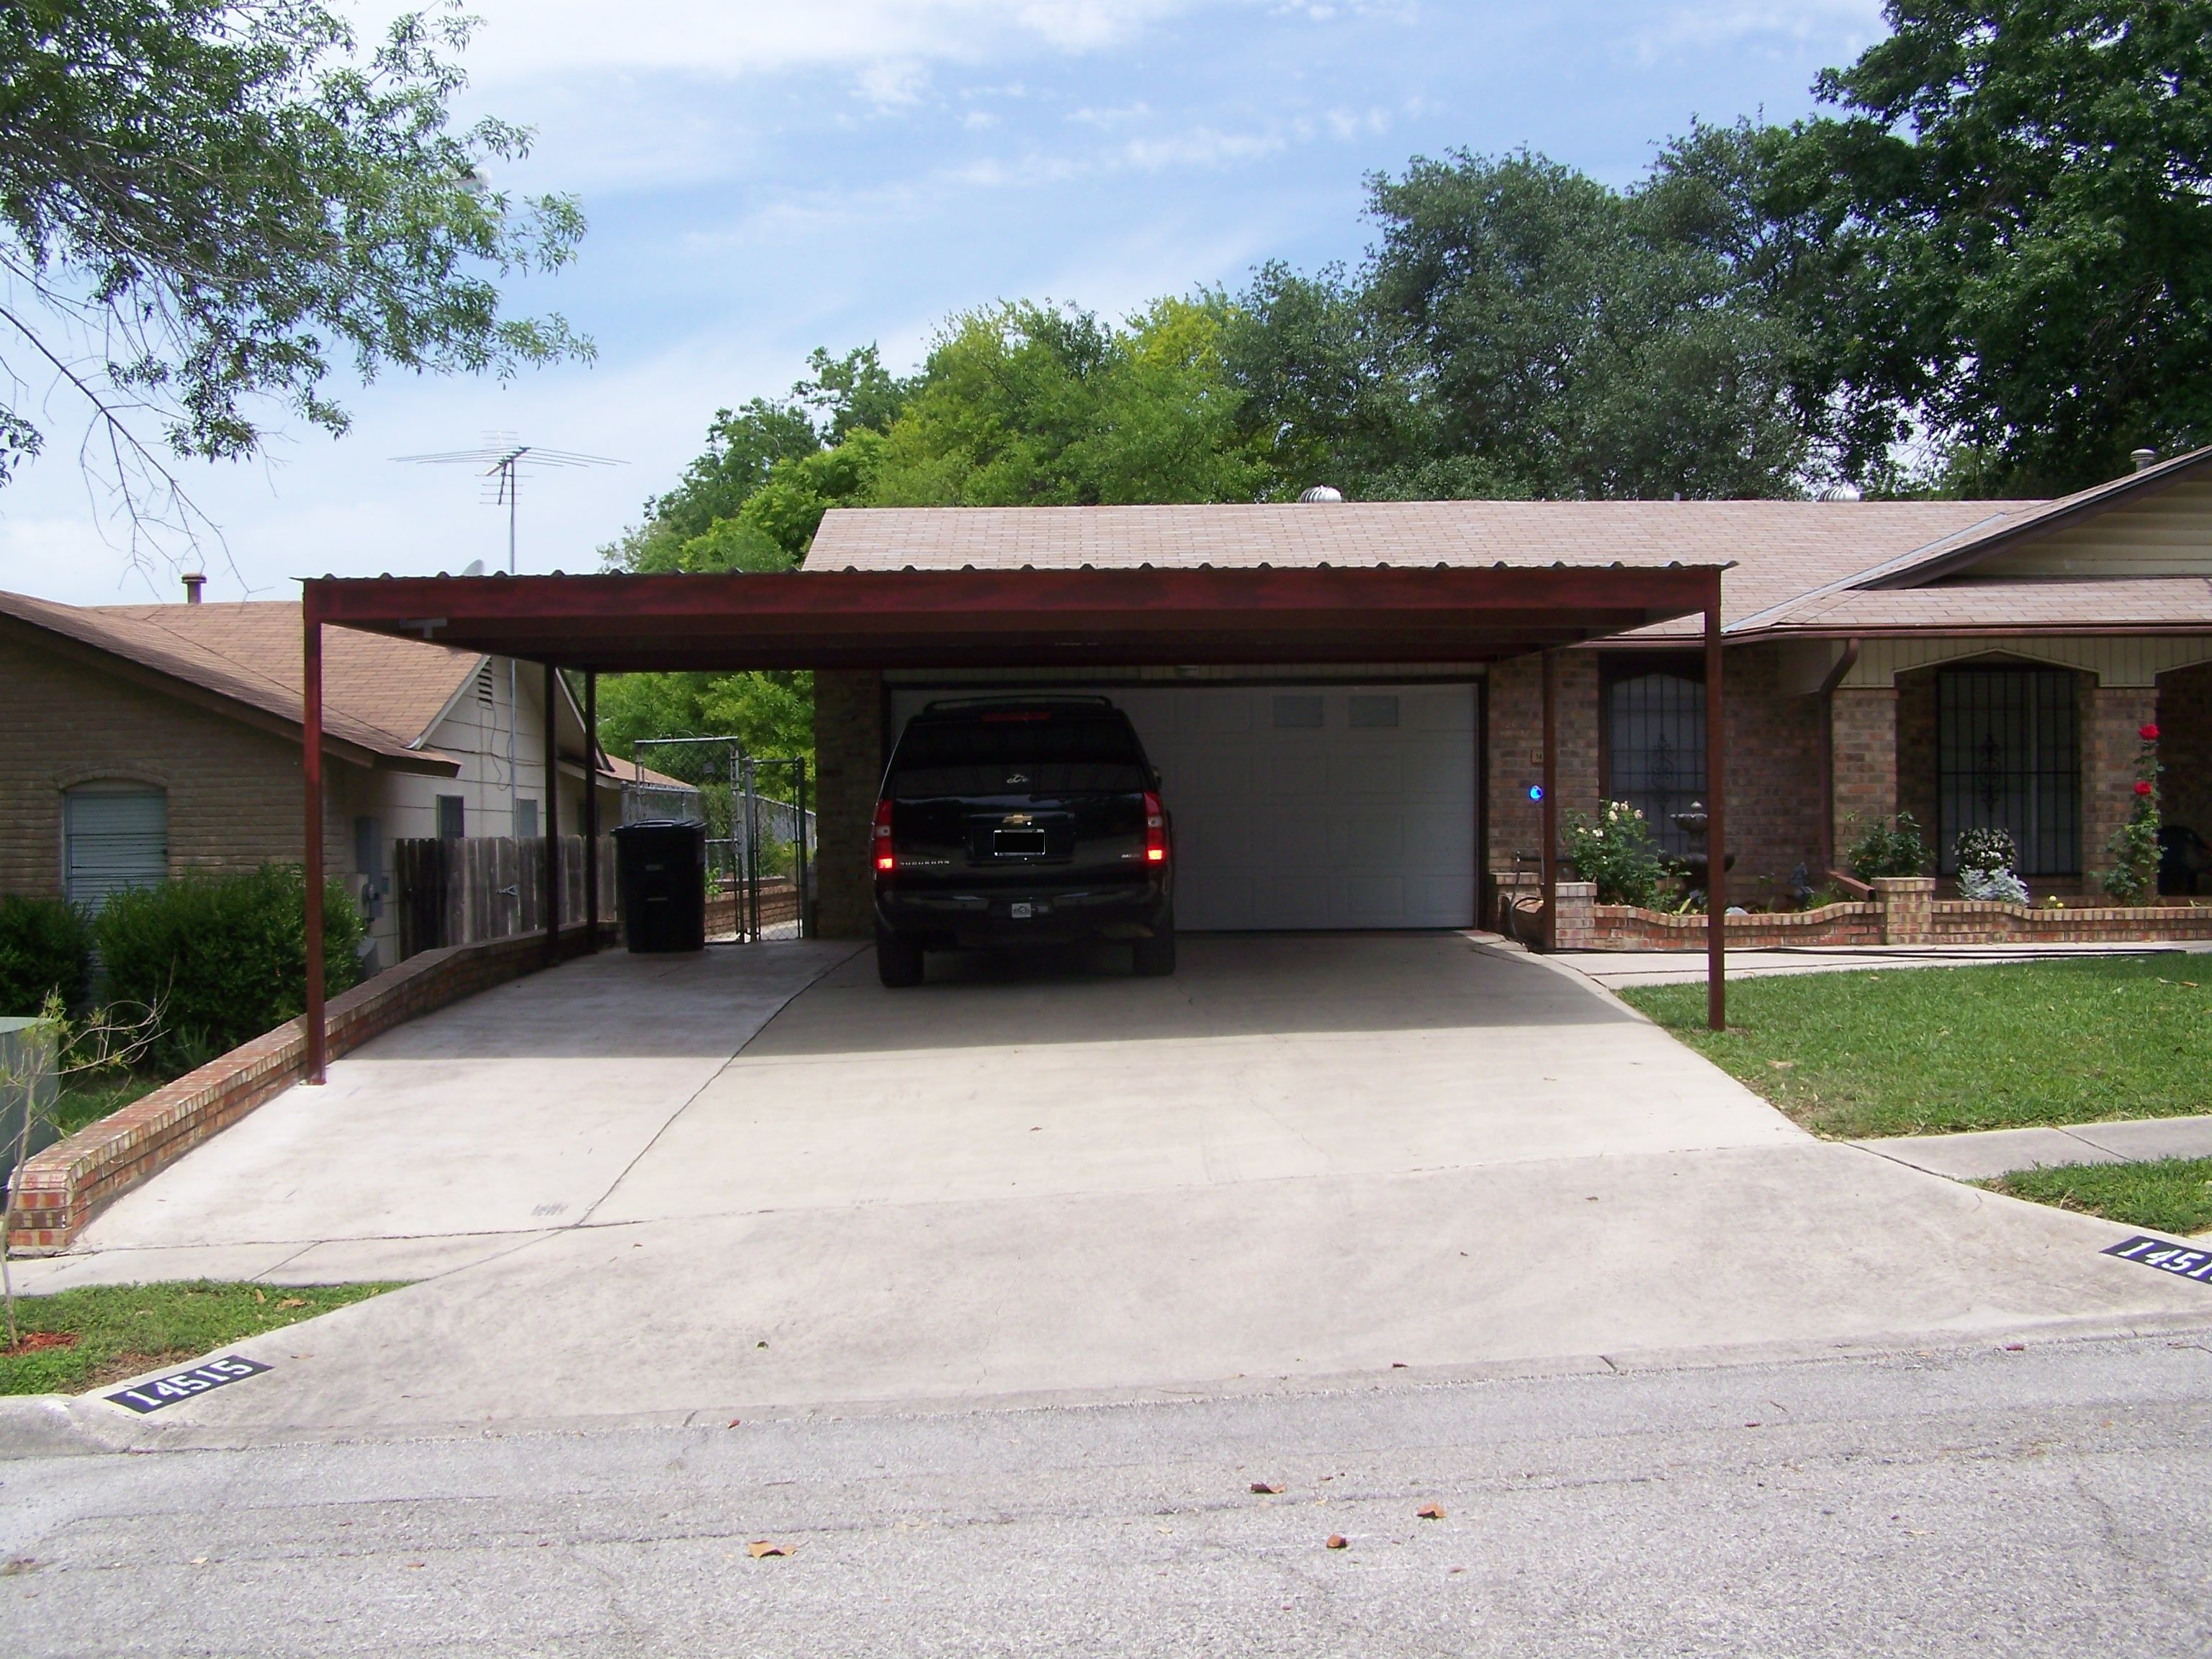 Image result for 2 car carport over driveway Exterior